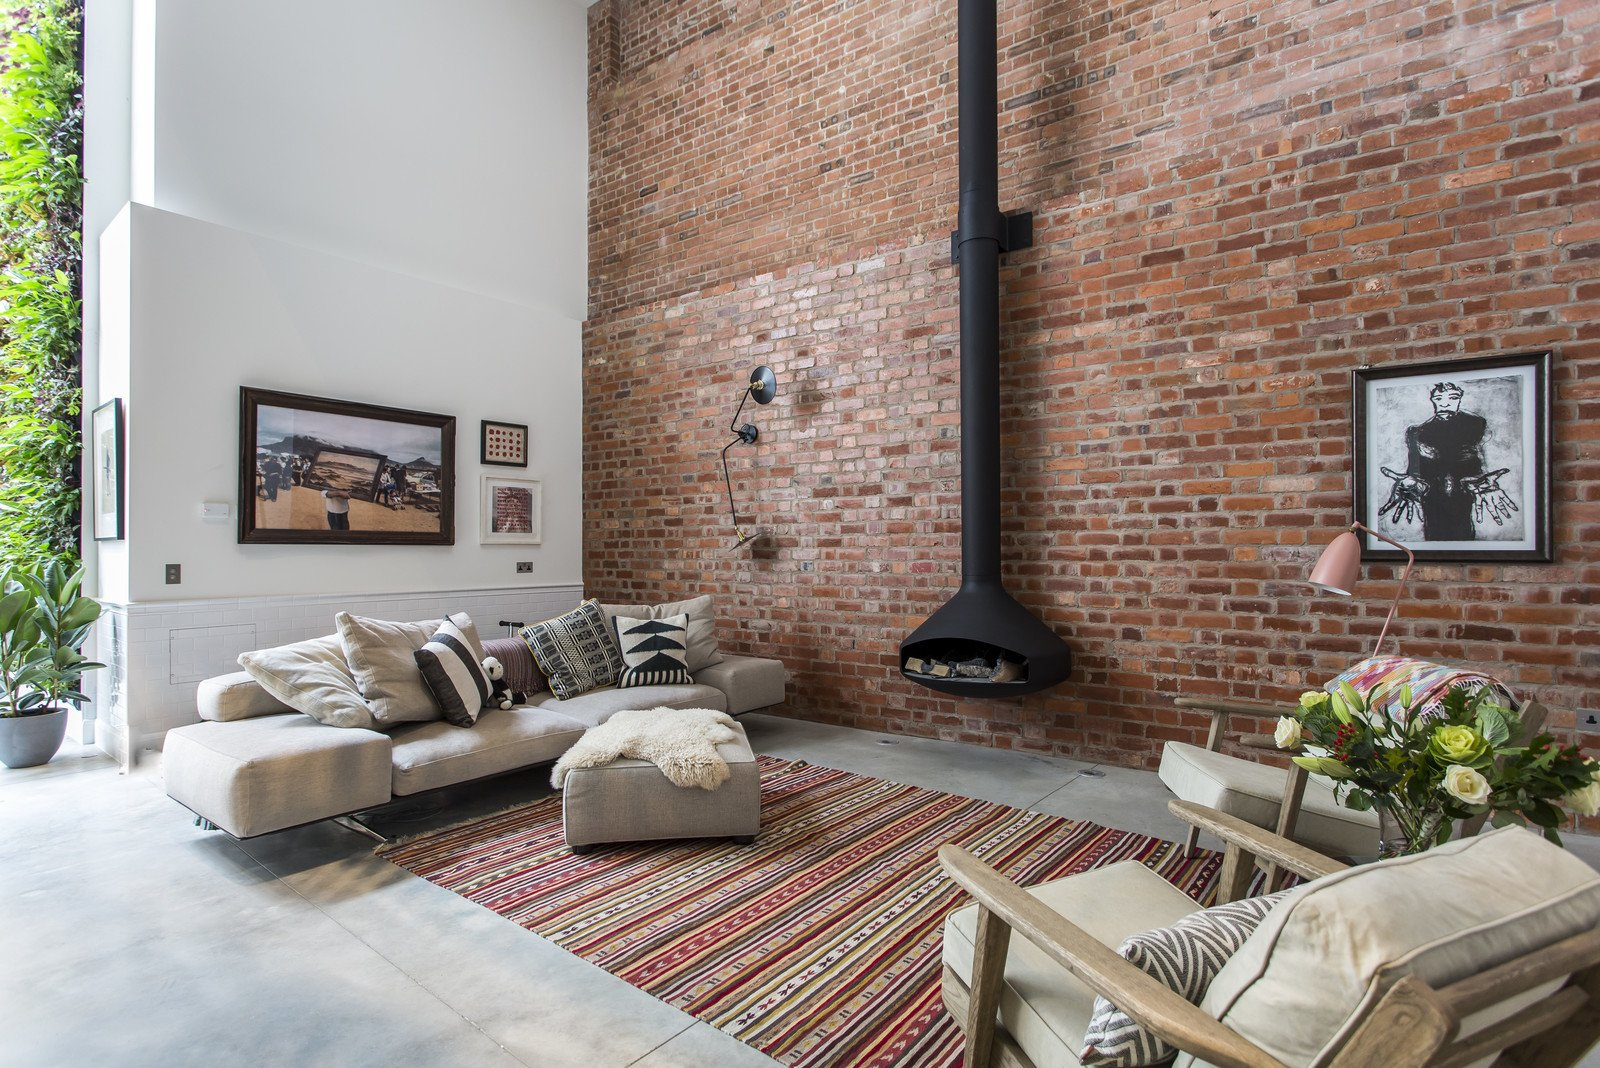 A former cooperage in Clerkenwell where barrels for a local brewery were made, this four-bedroom conversation by Chris Dyson Architects now is a chic holiday rental property. Tagged: Living Room, Hanging Fireplace, Concrete Floor, Chair, and Sofa.  Photo 2 of 11 in 10 Modern Homes in London